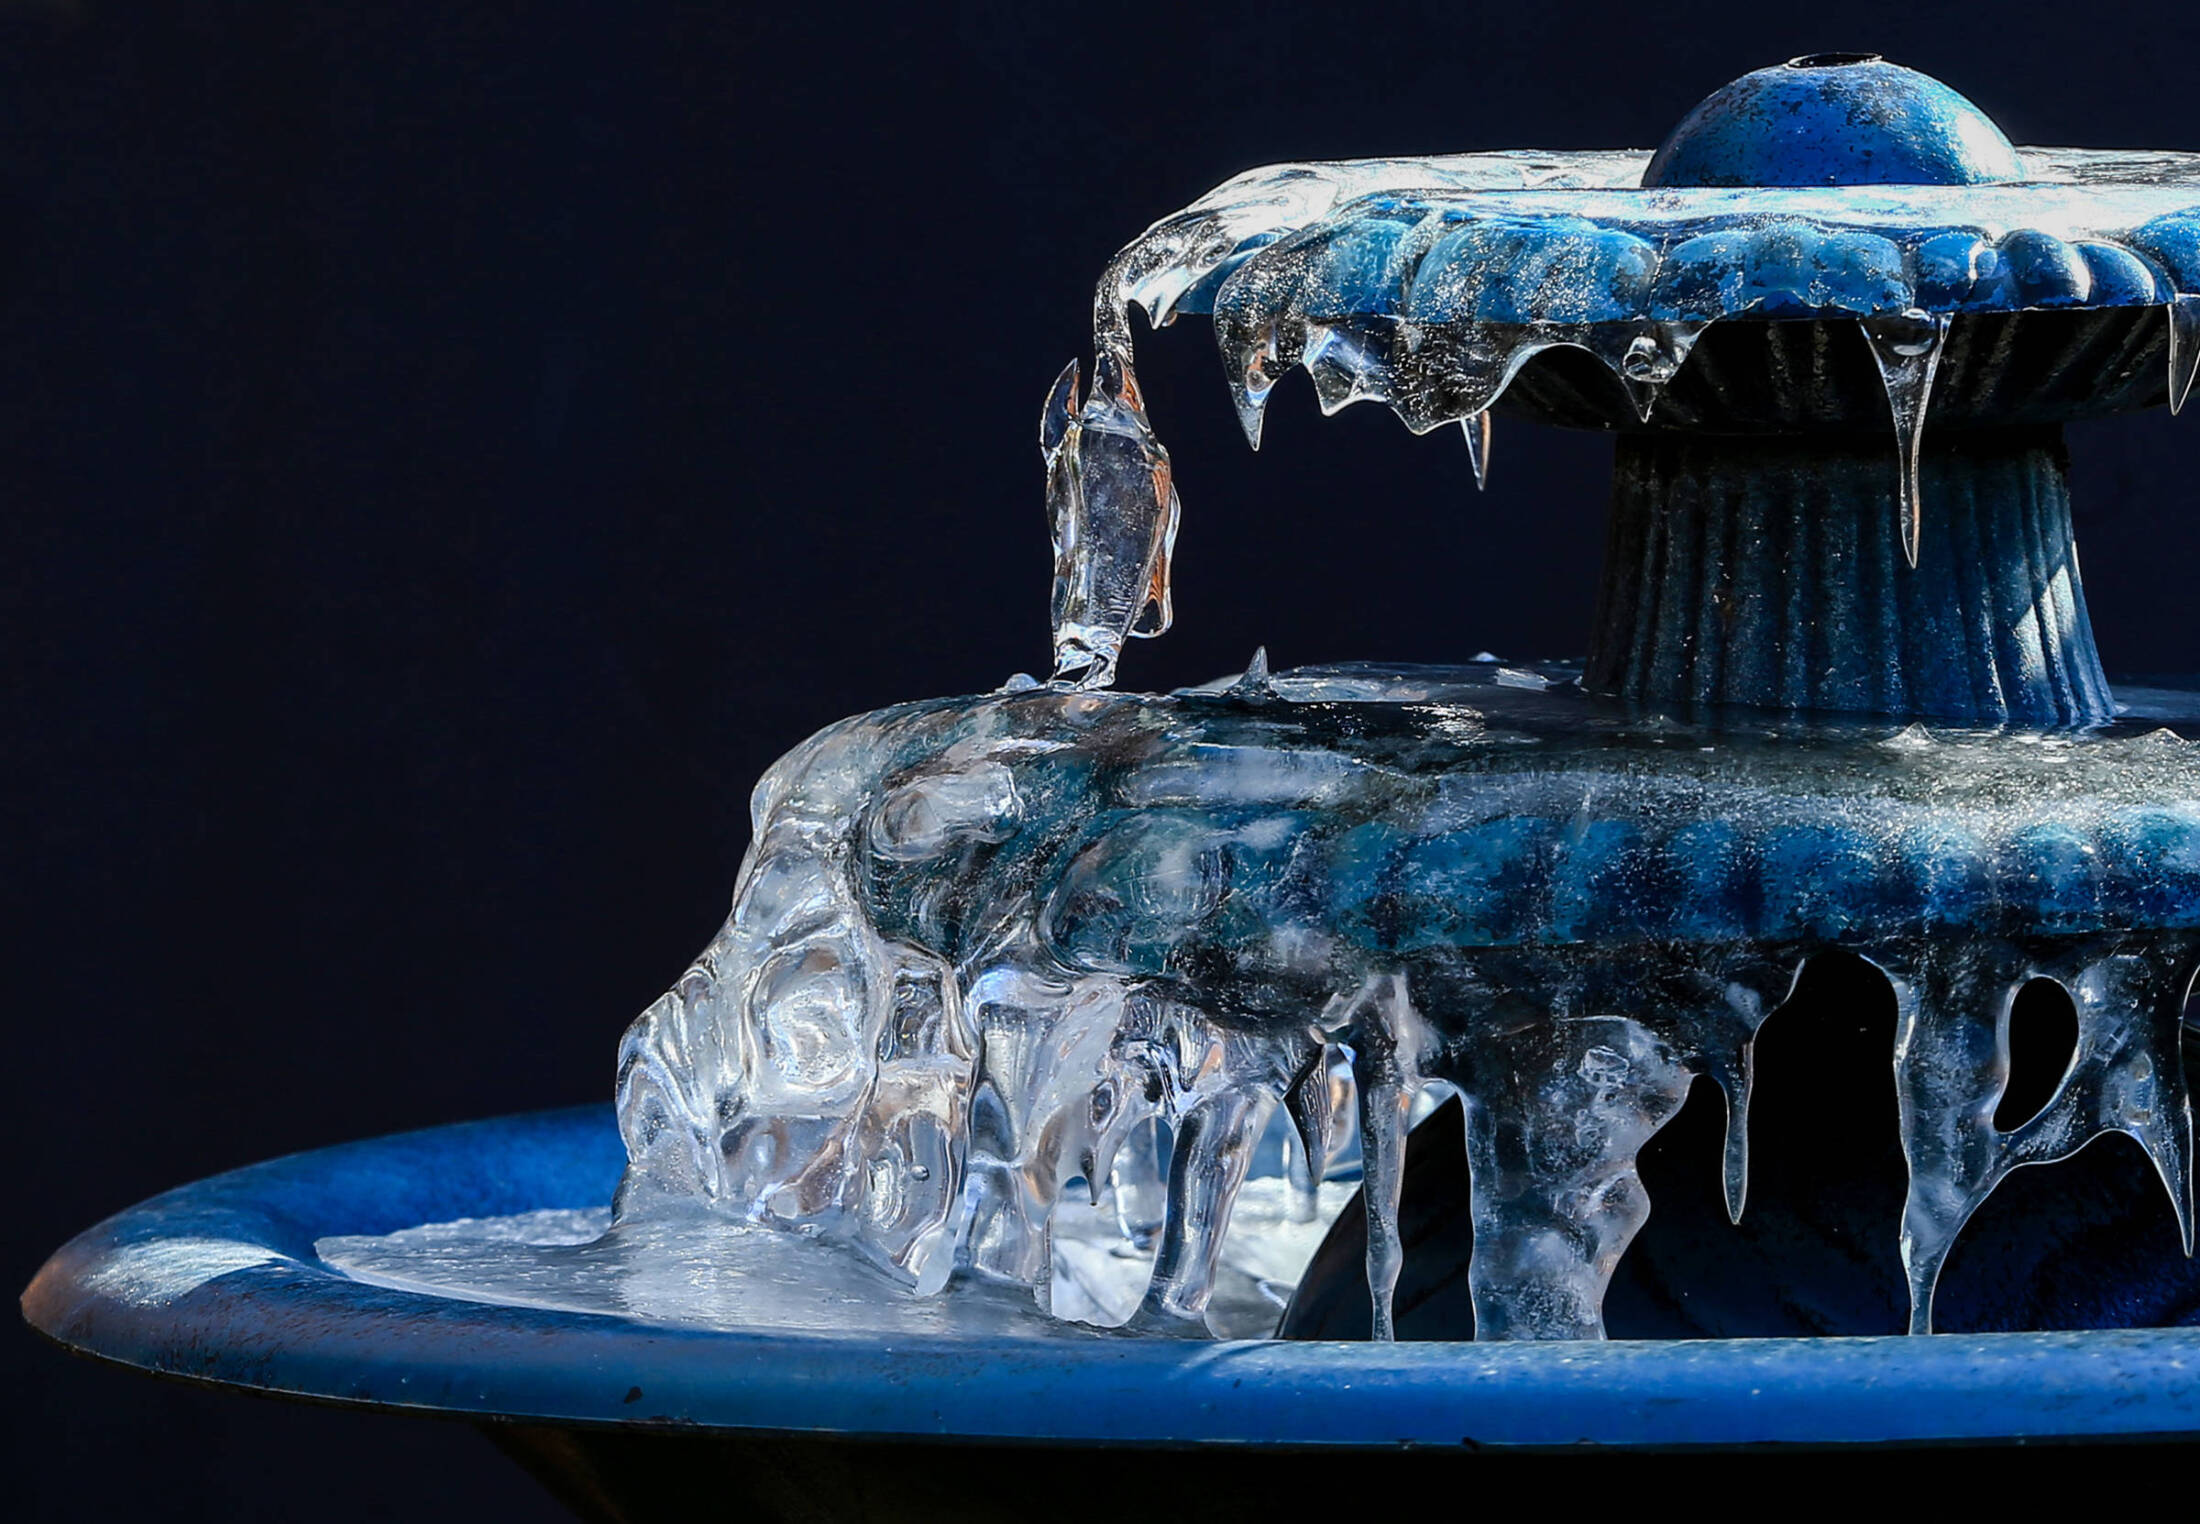 Winterizing Your Water Features